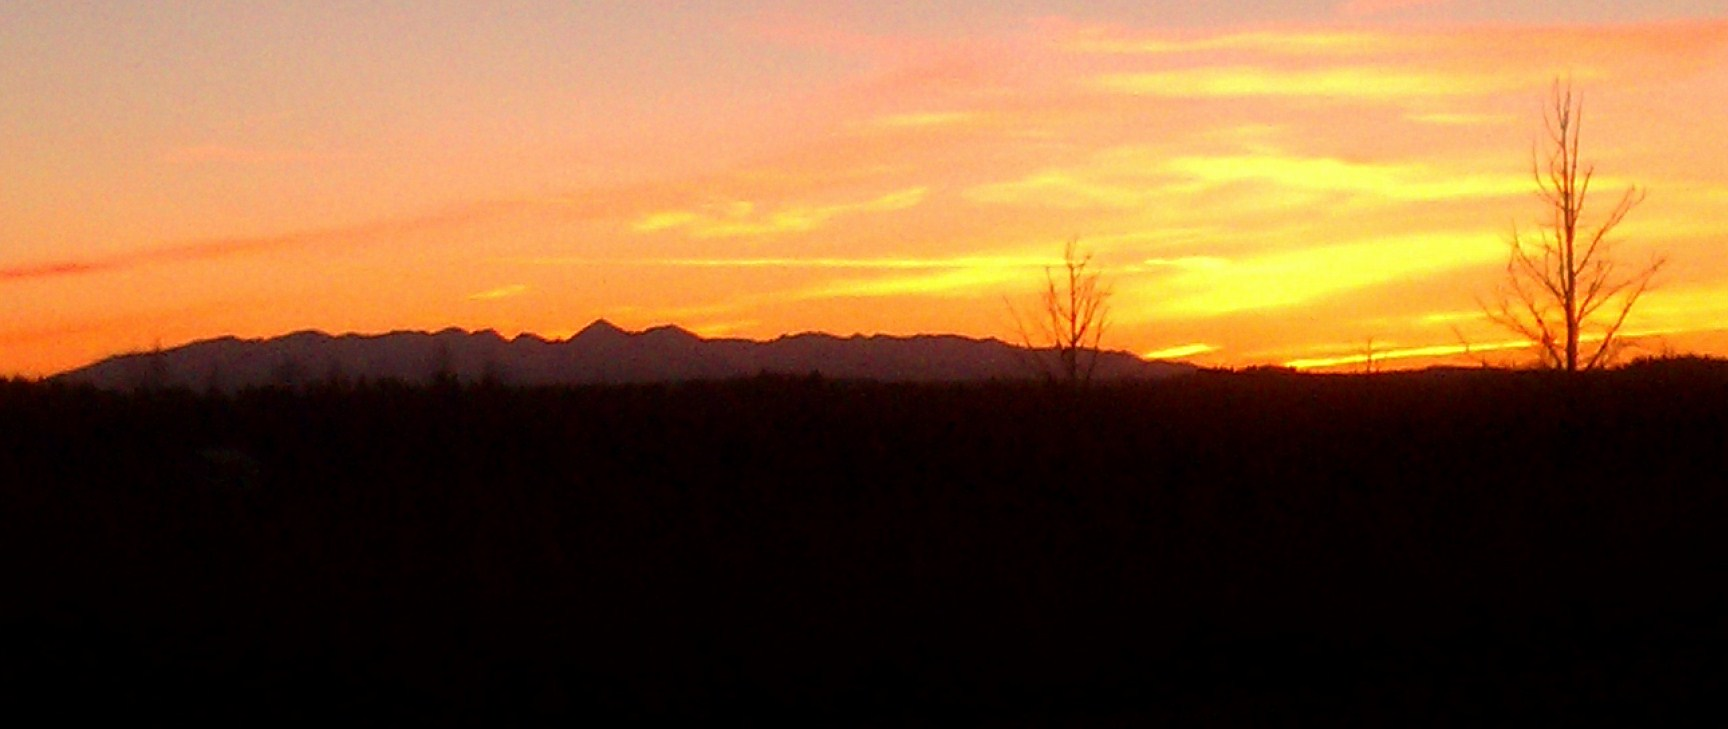 2011-06-04 - Sunset over the Crazy Mountains.jpg